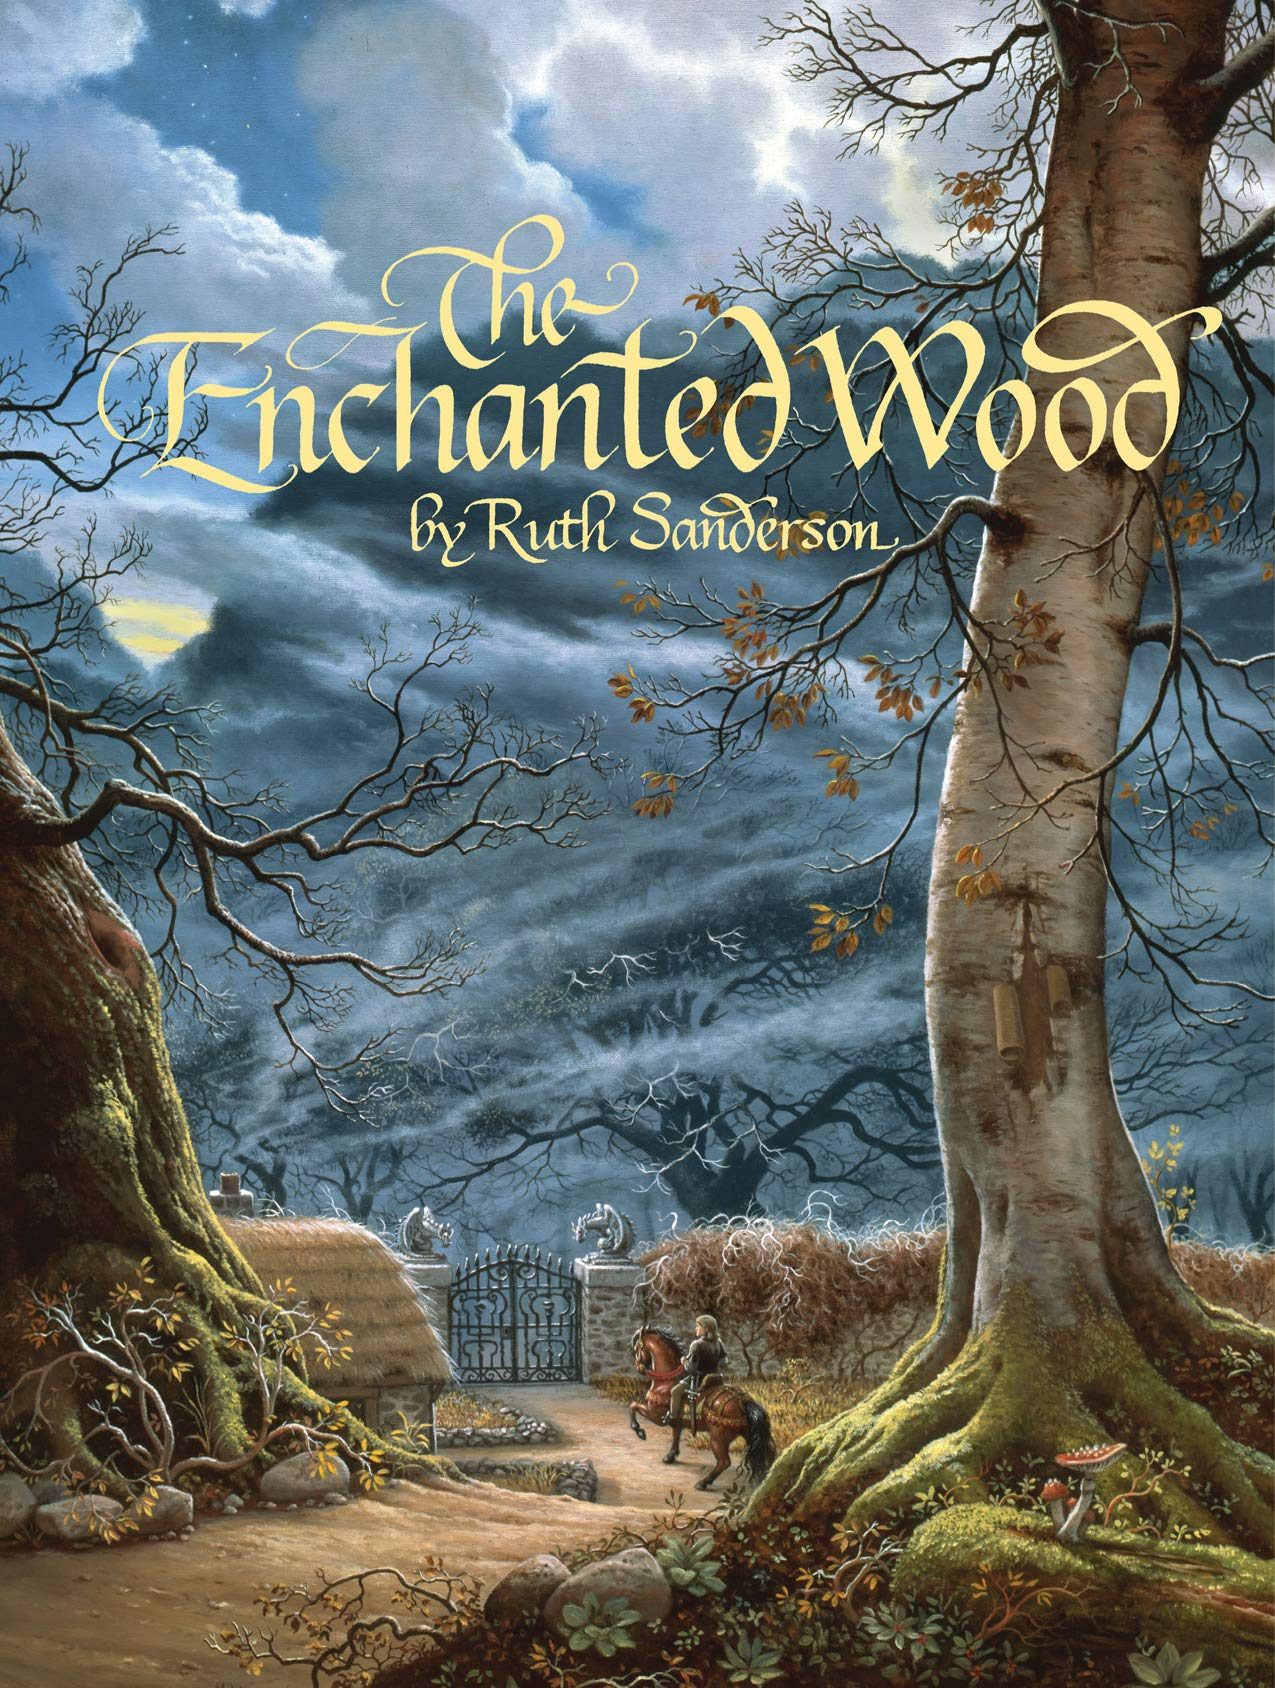 2. Ruth Sanderson, The Enchanted Wood cover, 1991